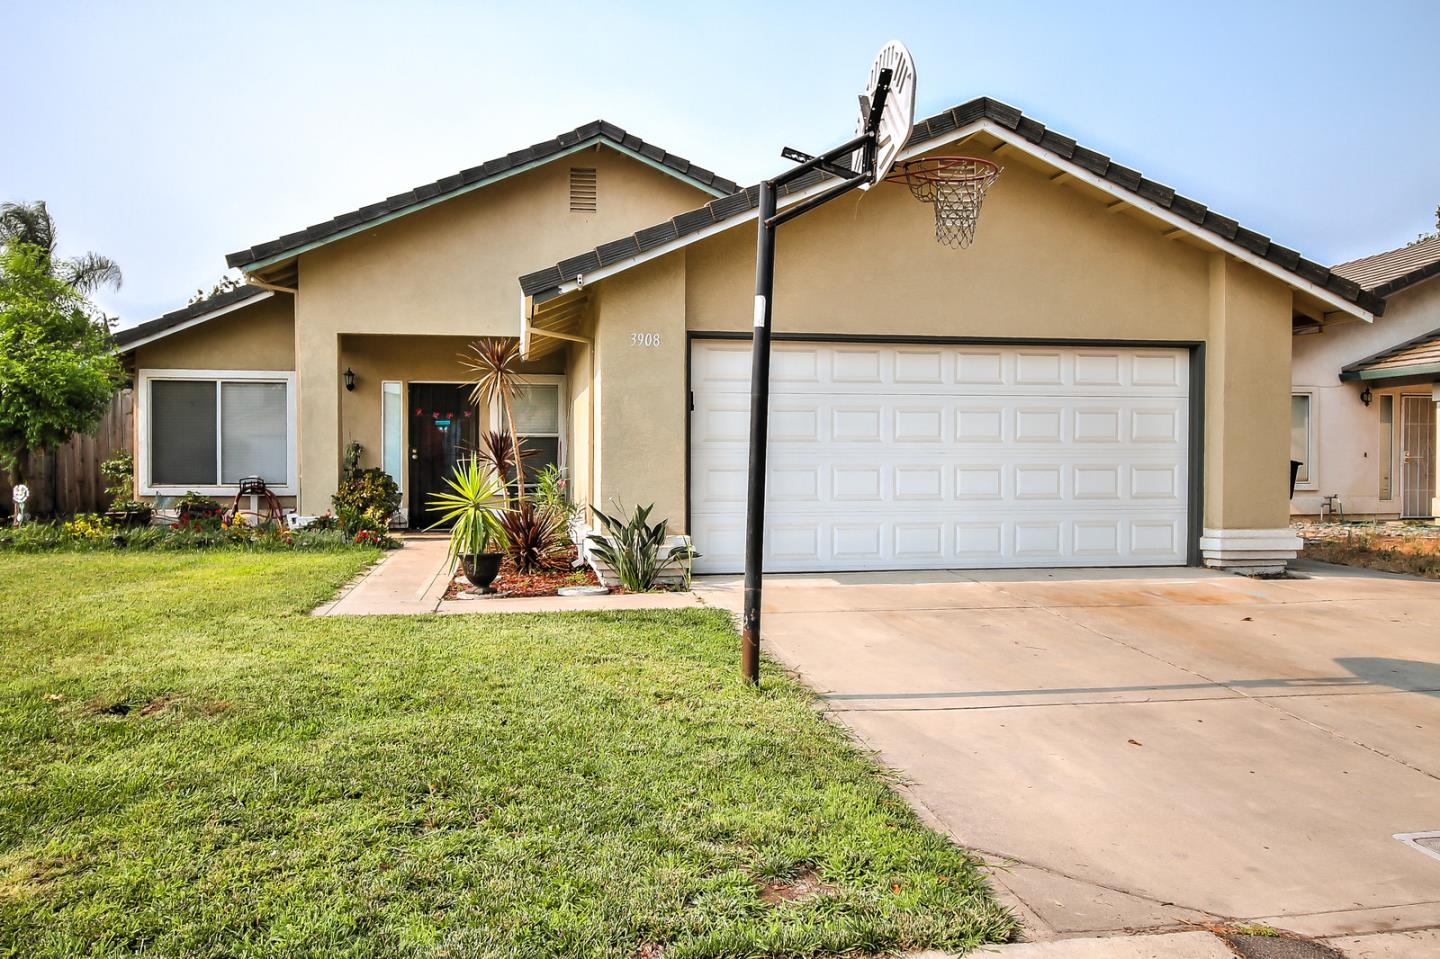 3908 Gatesville Avenue Modesto, CA 95357 - MLS #: ML81718667